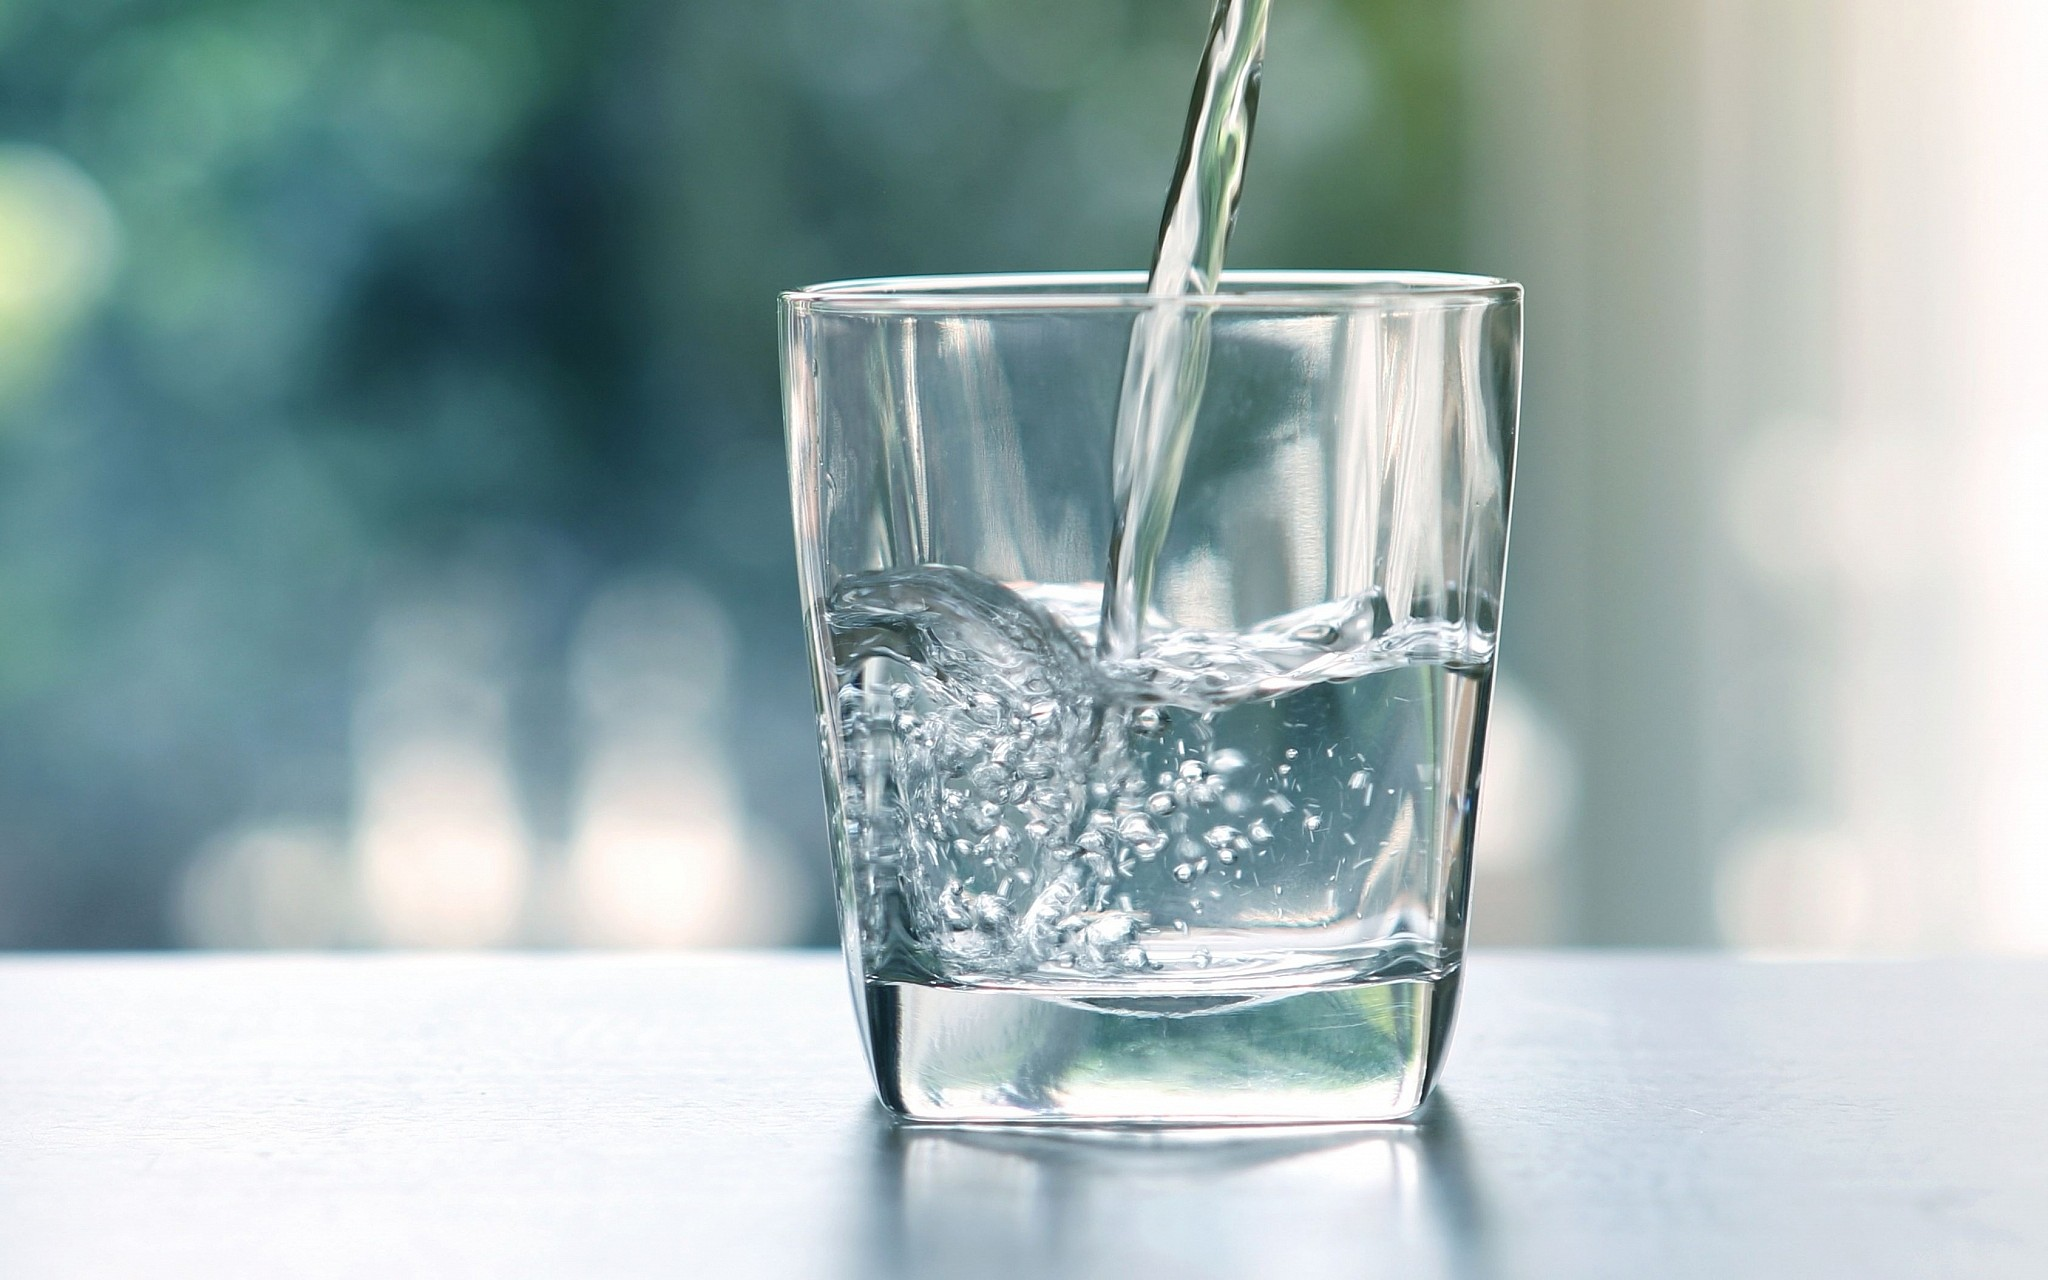 How to make water drinkable at home? - Right to Water